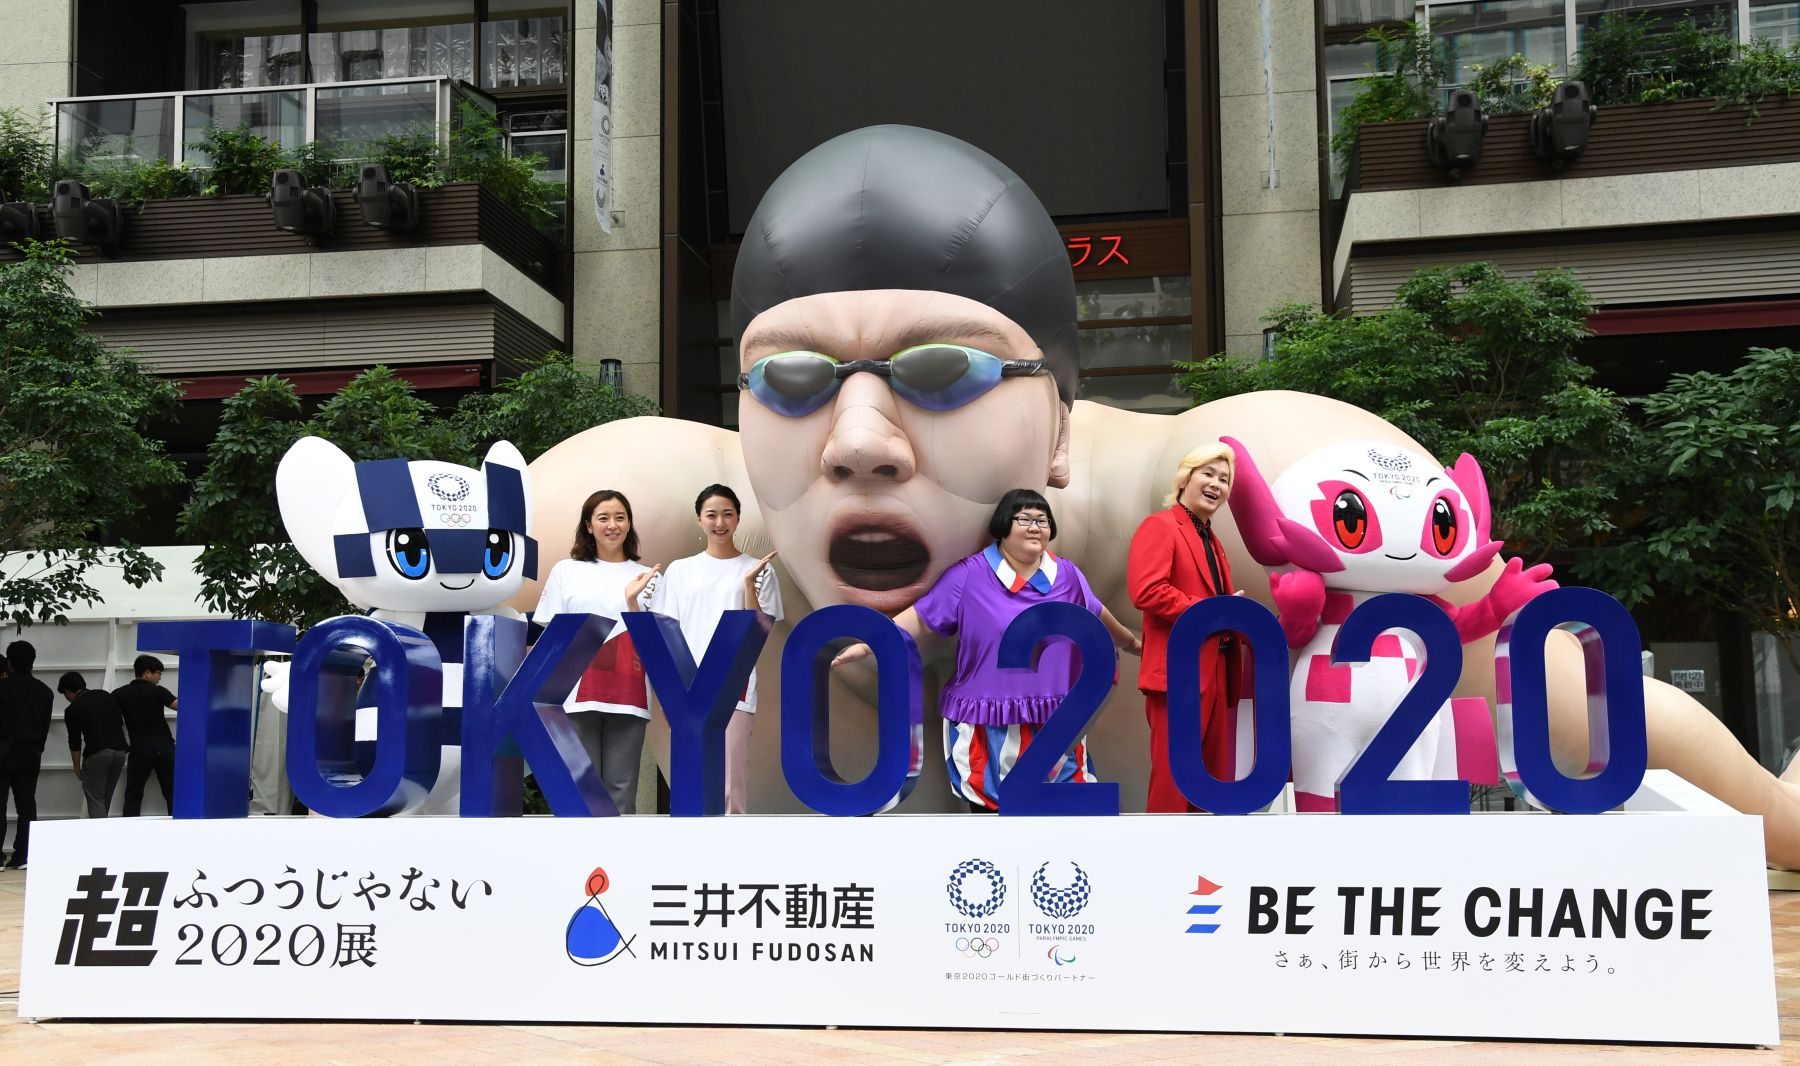 One Year Until Tokyo 2020 Olympic Games New National Stadium Medals Mascot Robots Events 056